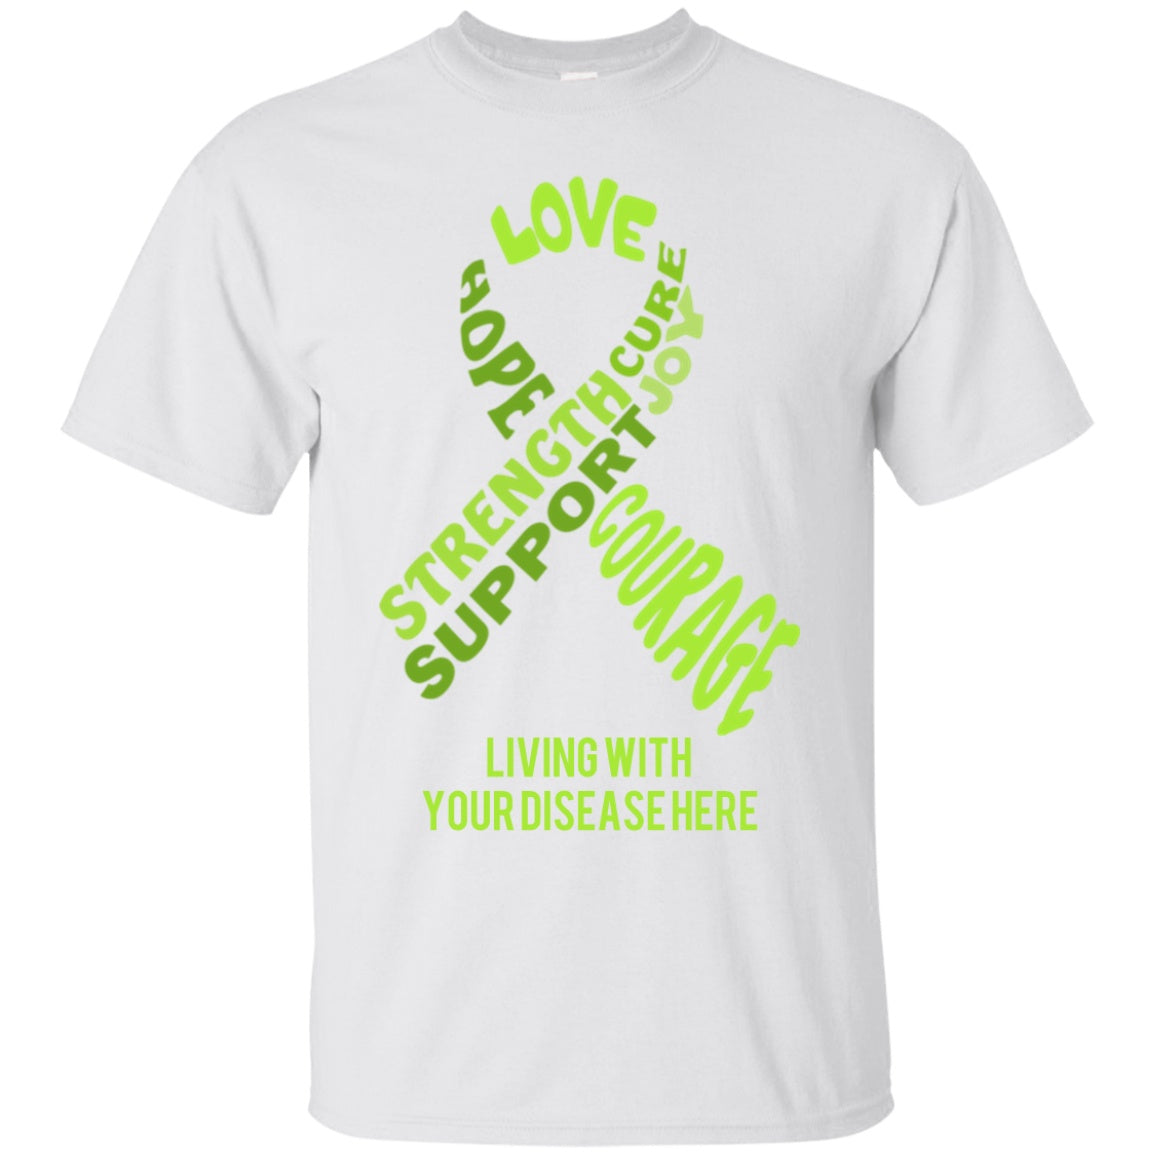 Customisable Lime Green Awareness Ribbon With Words Unisex Shirt - The Unchargeables